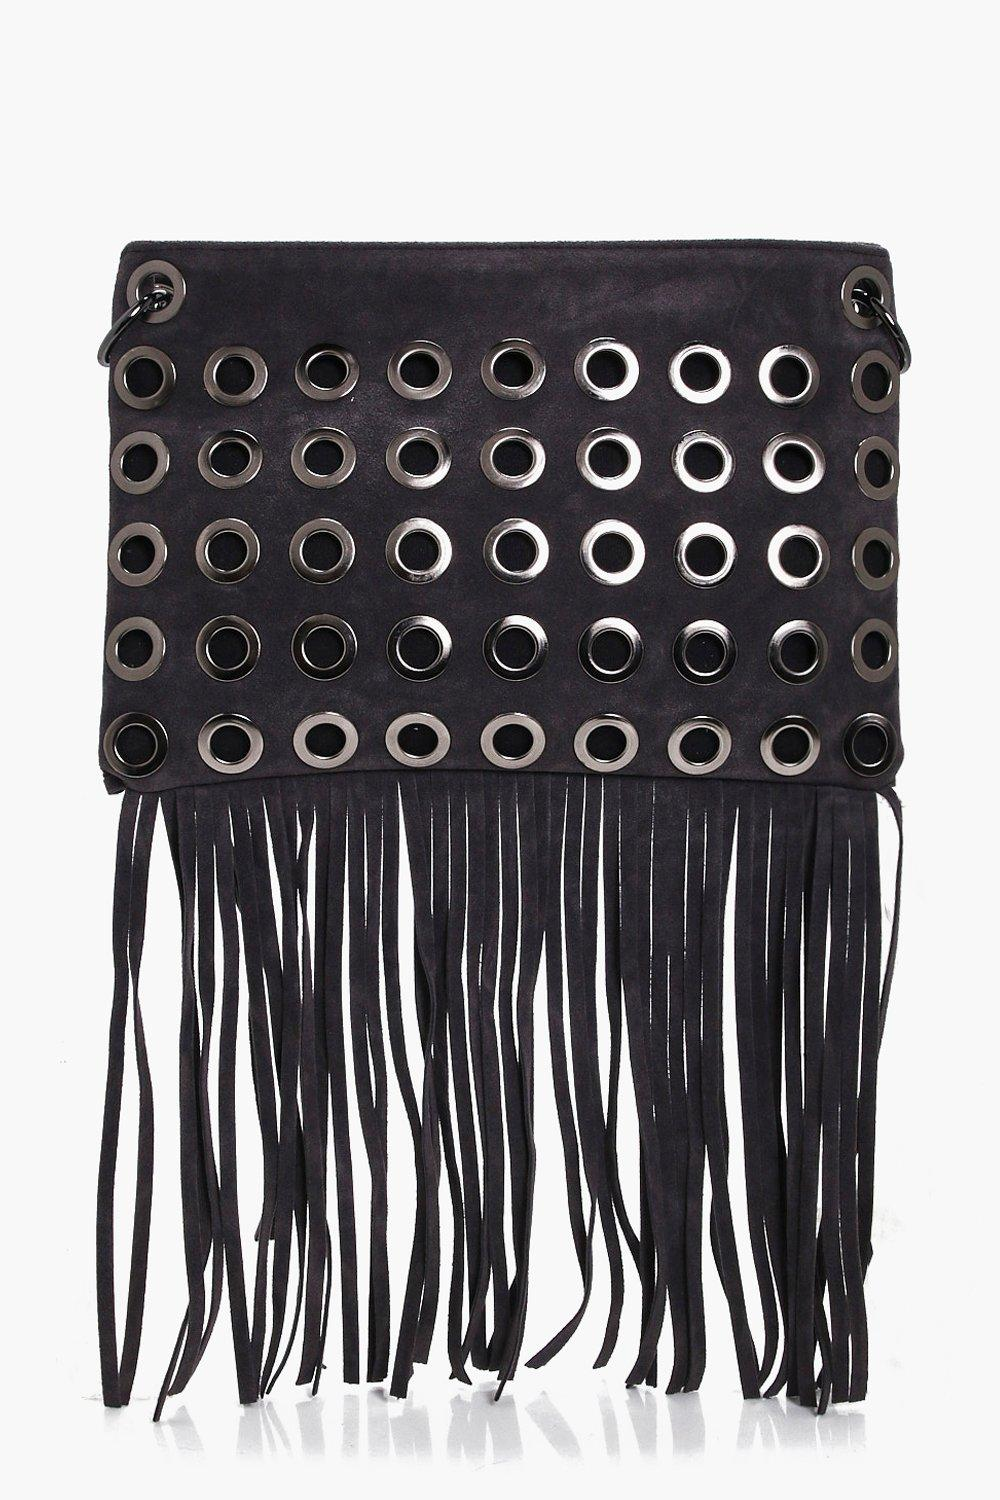 Eyelet Fringed Cross Body Bag - grey - Rosie Eyele